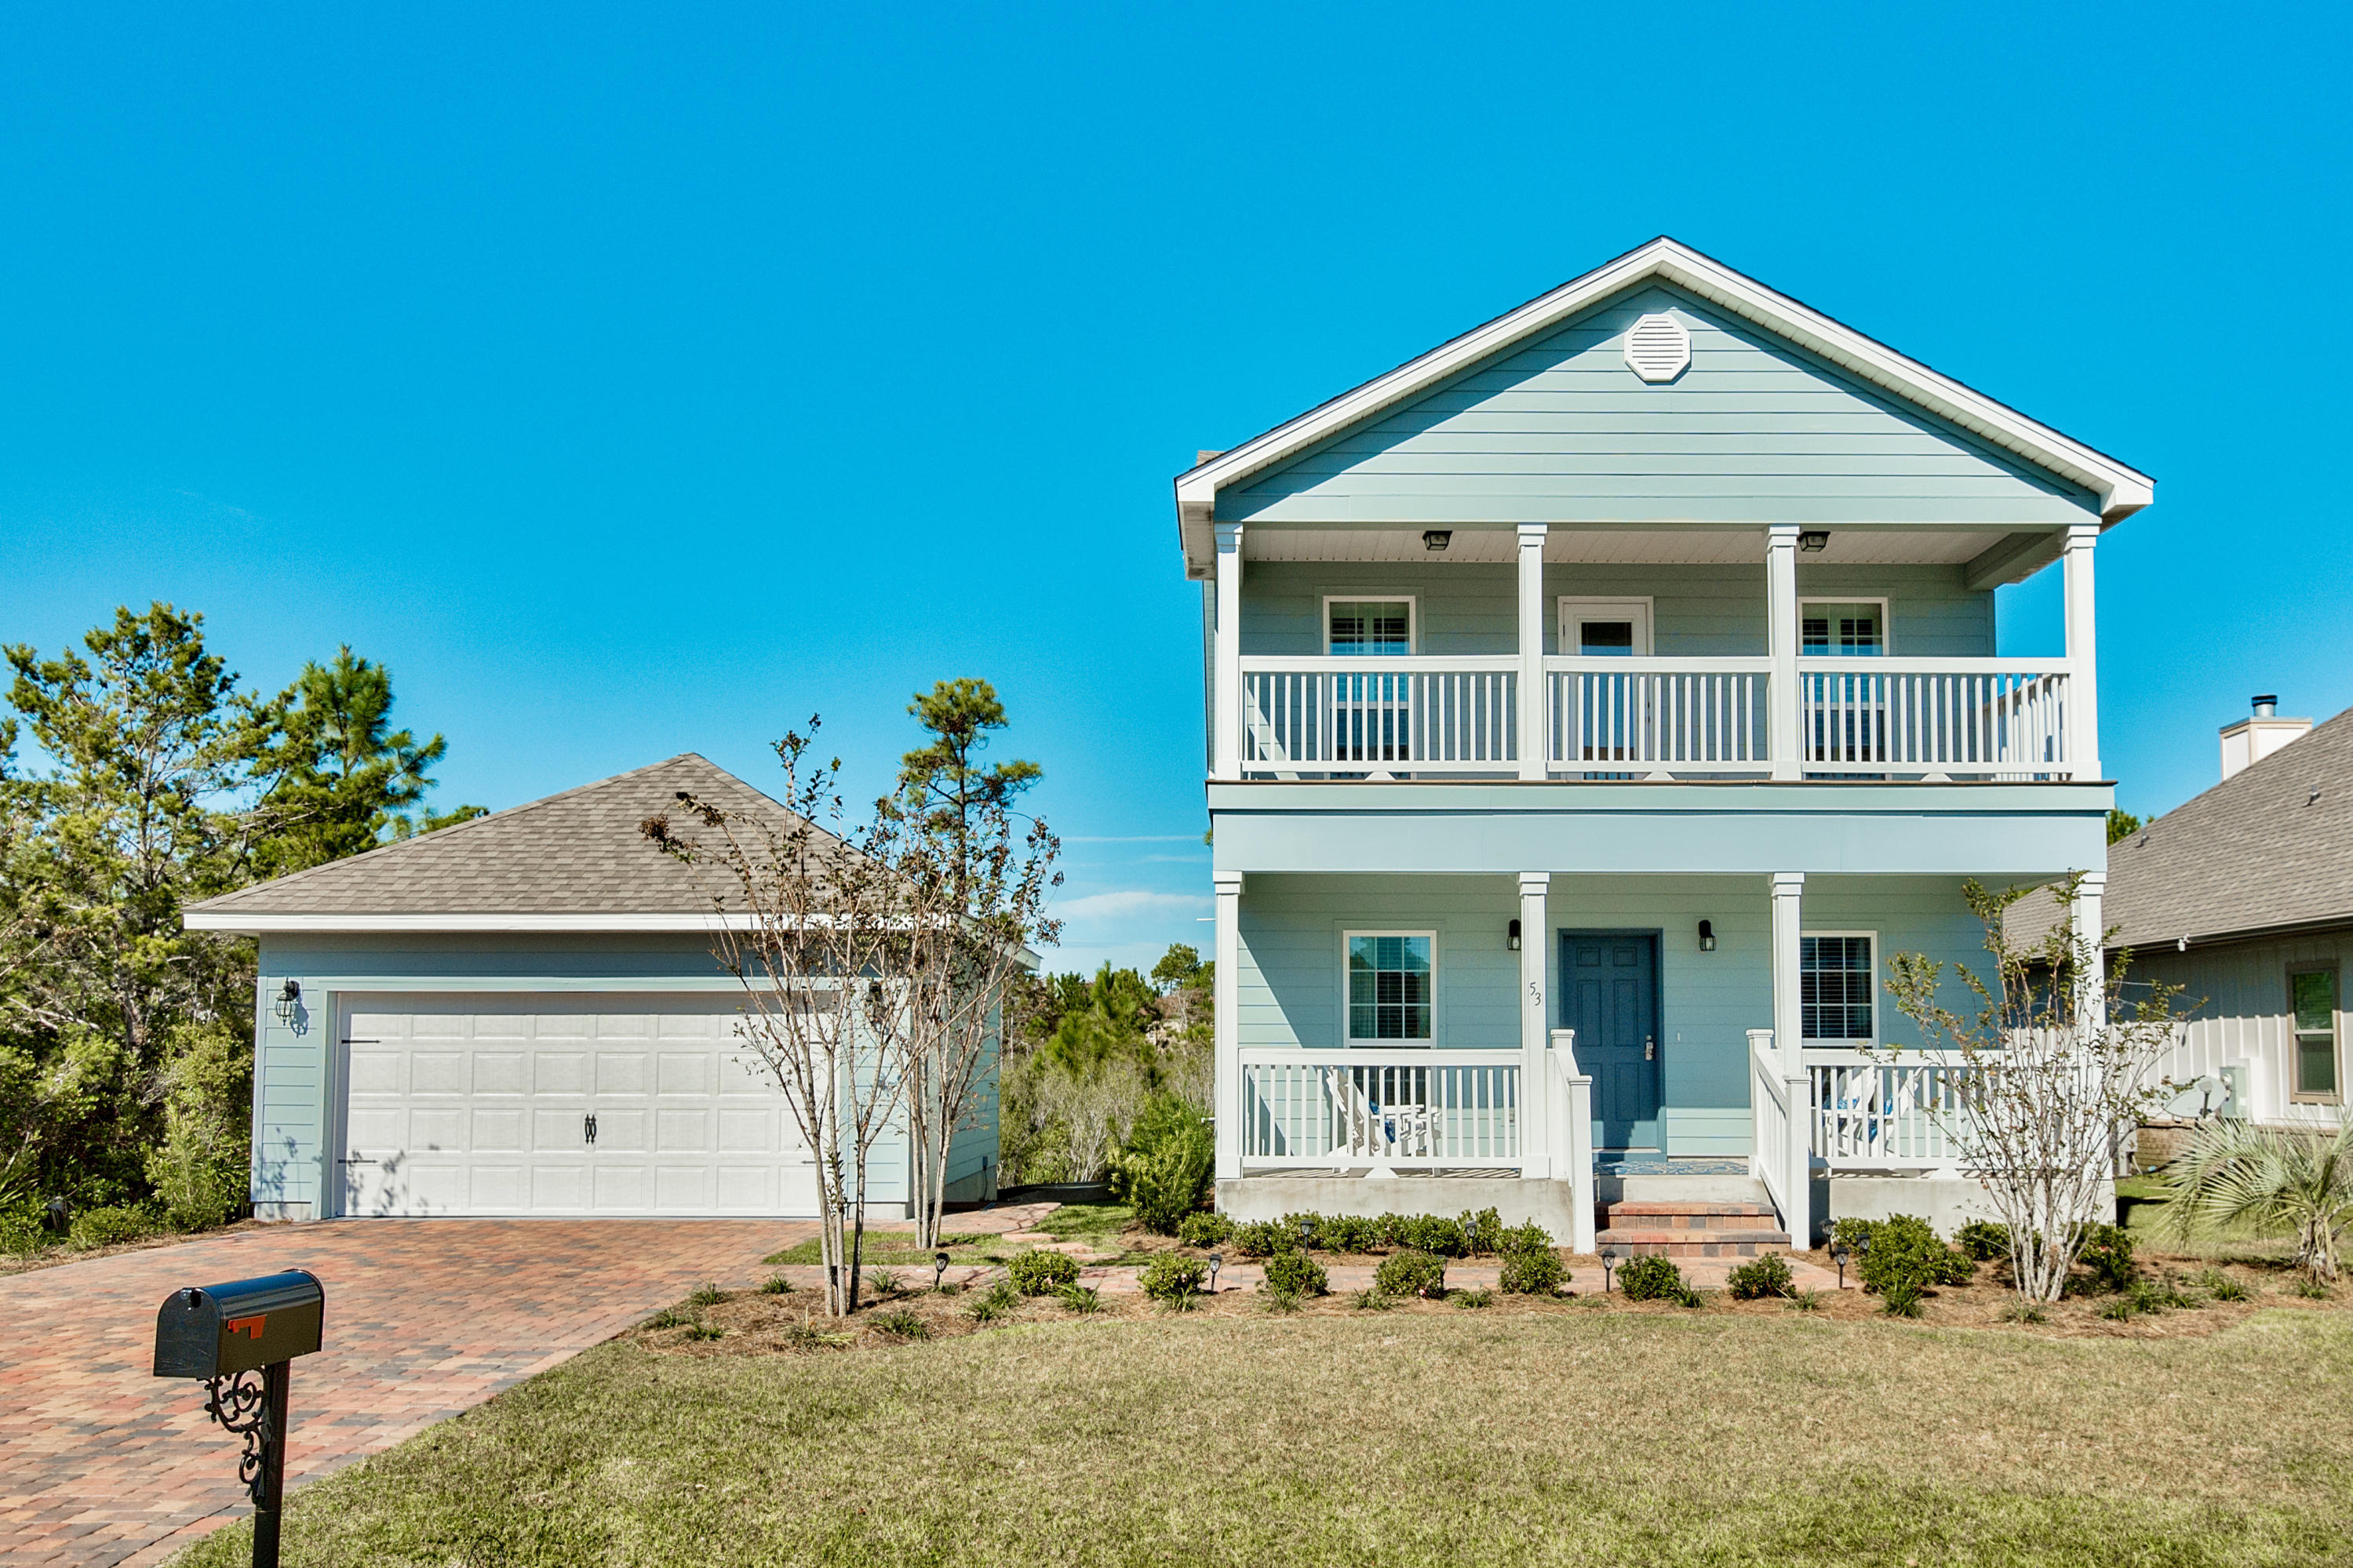 Photo of home for sale at 53 Tropical Breeze, Santa Rosa Beach FL